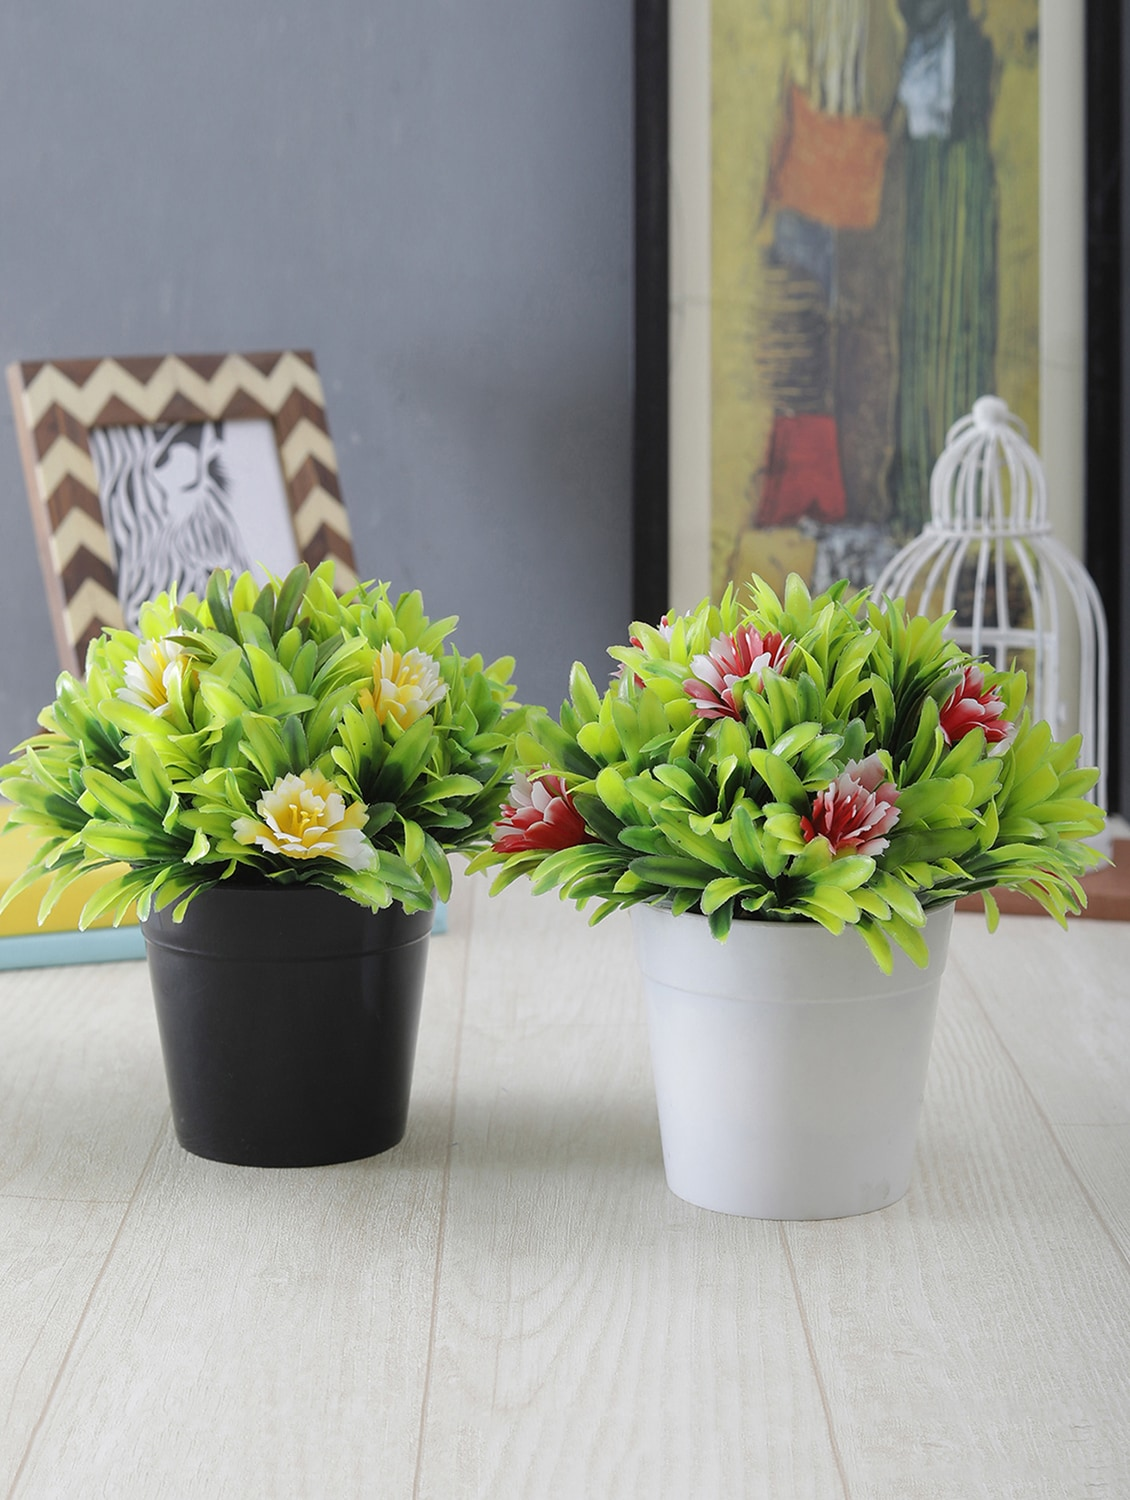 Buy Foliyaj Combo Of 2 Artificial Plants With Large Green Leaves And